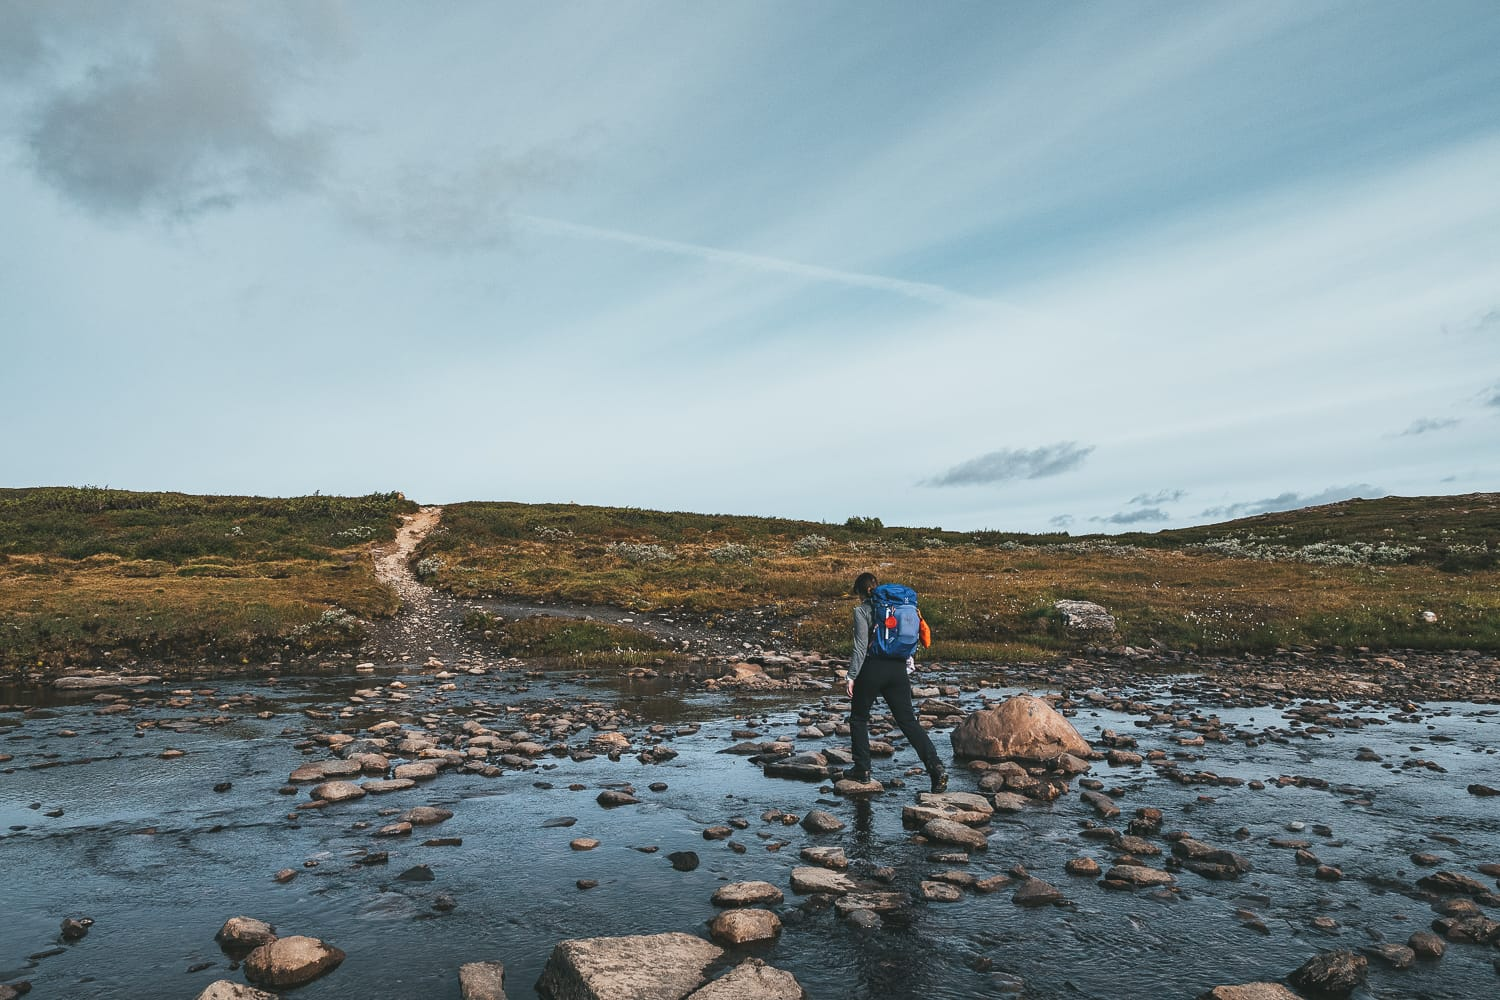 hiker crossing water in Ljungdalen